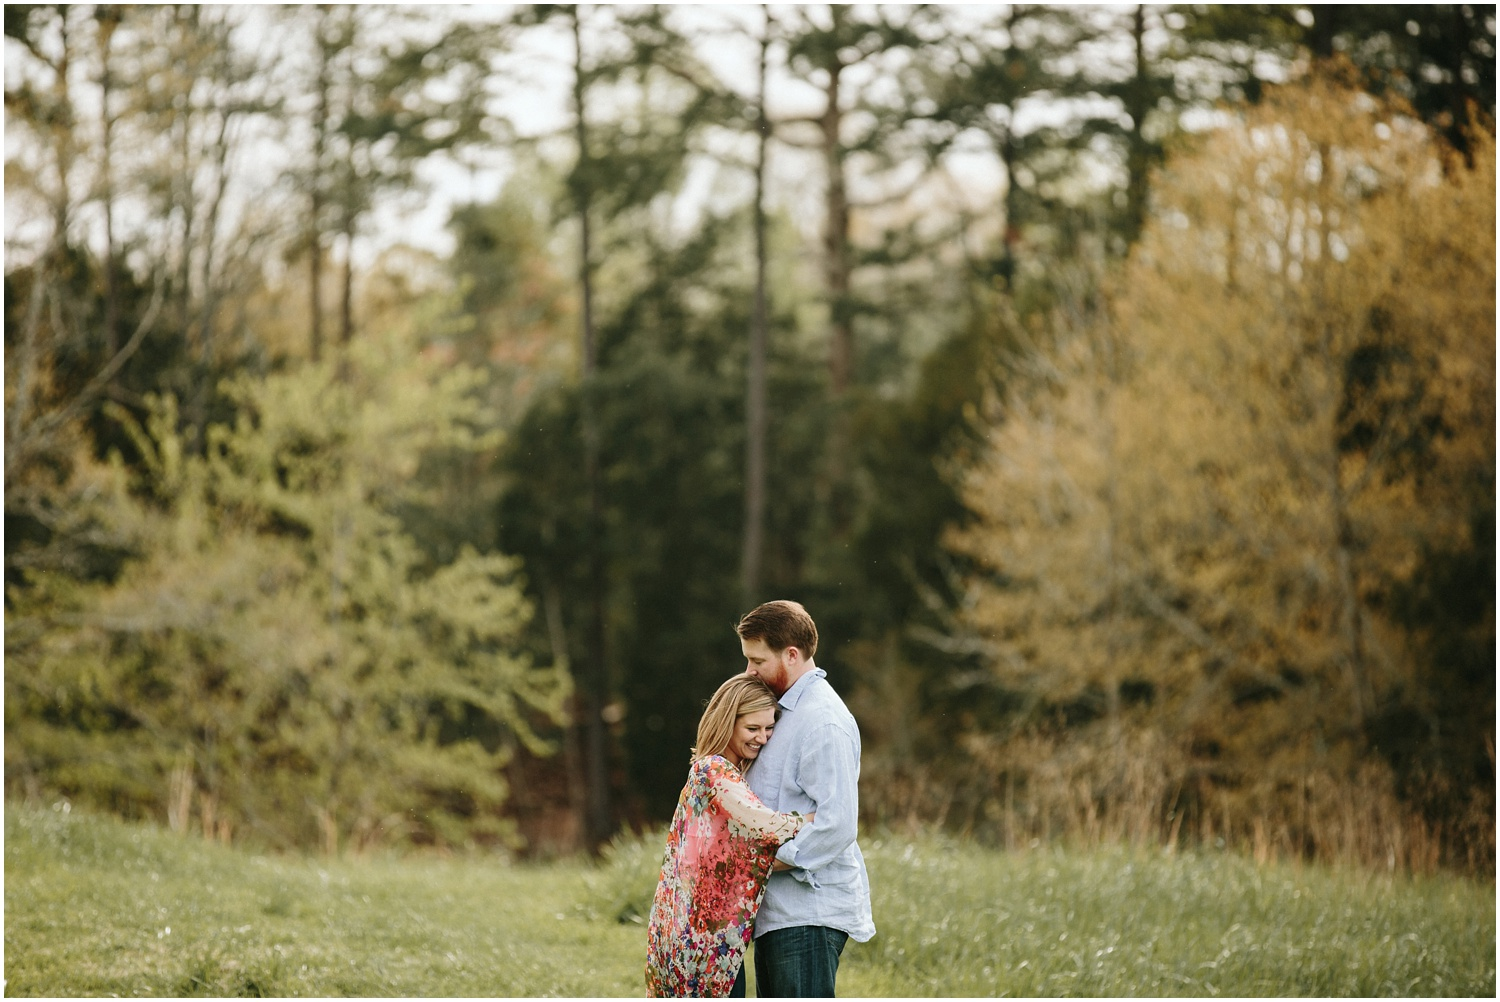 The Ivy Place Engagment | Amore Vita Photography_0008.jpg